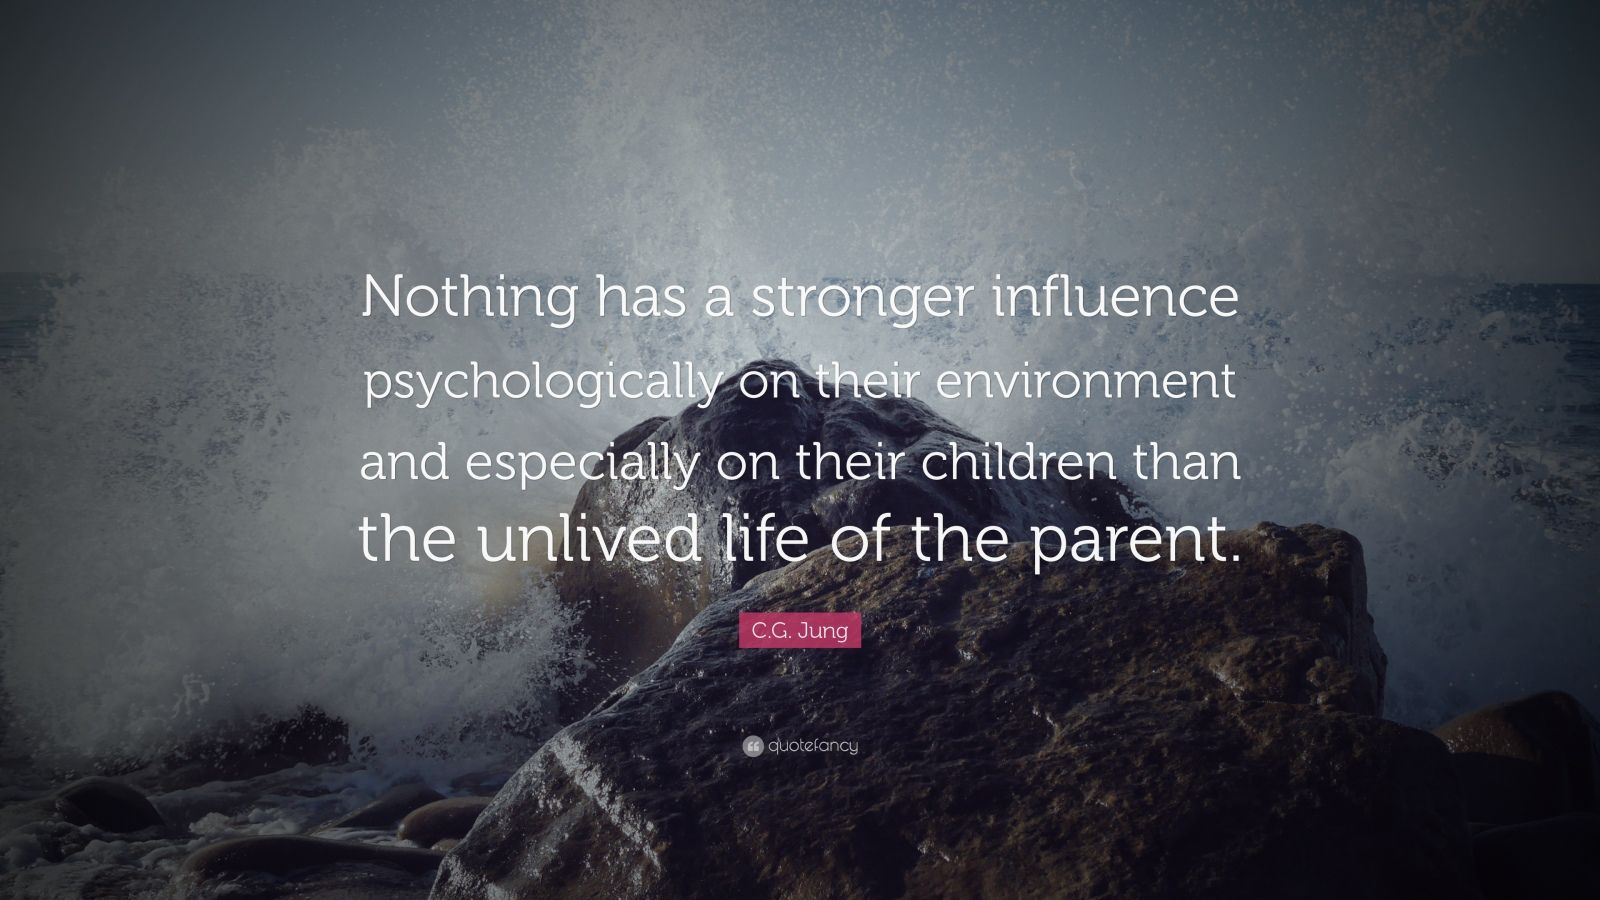 """C.G. Jung Quote: """"Nothing has a stronger influence psychologically on their environment and especially on their children than the unlived life of the parent."""""""